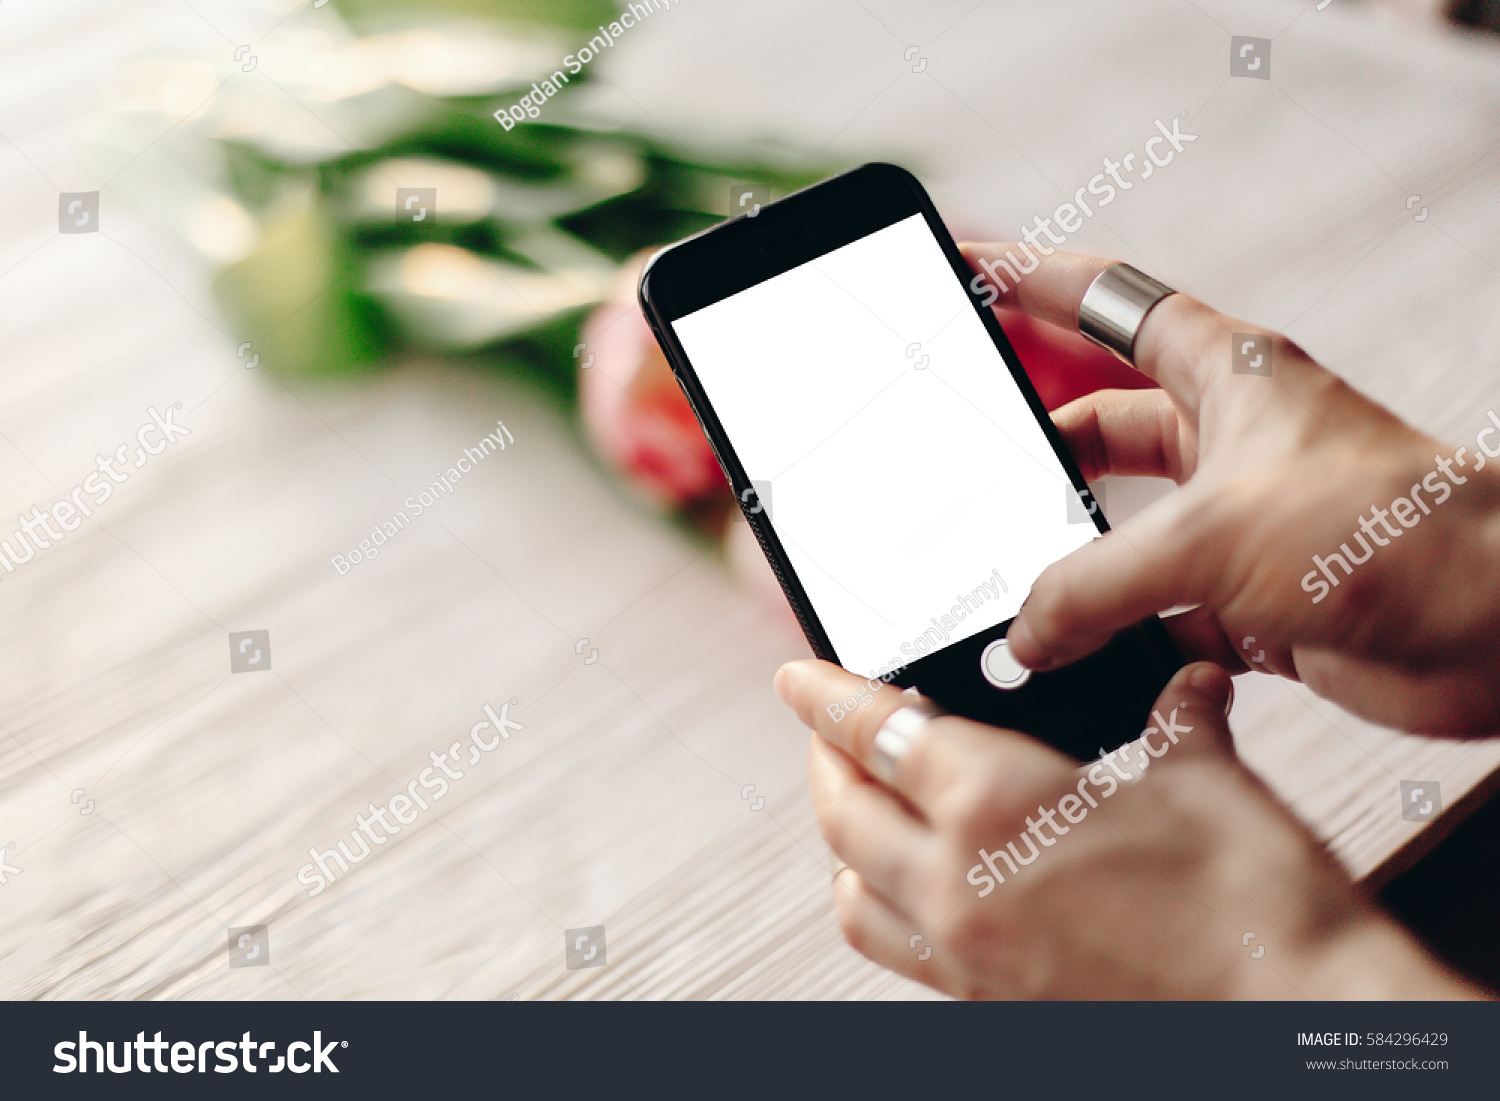 Hand Holding Phone Empty Screen Space Stock Photo ...